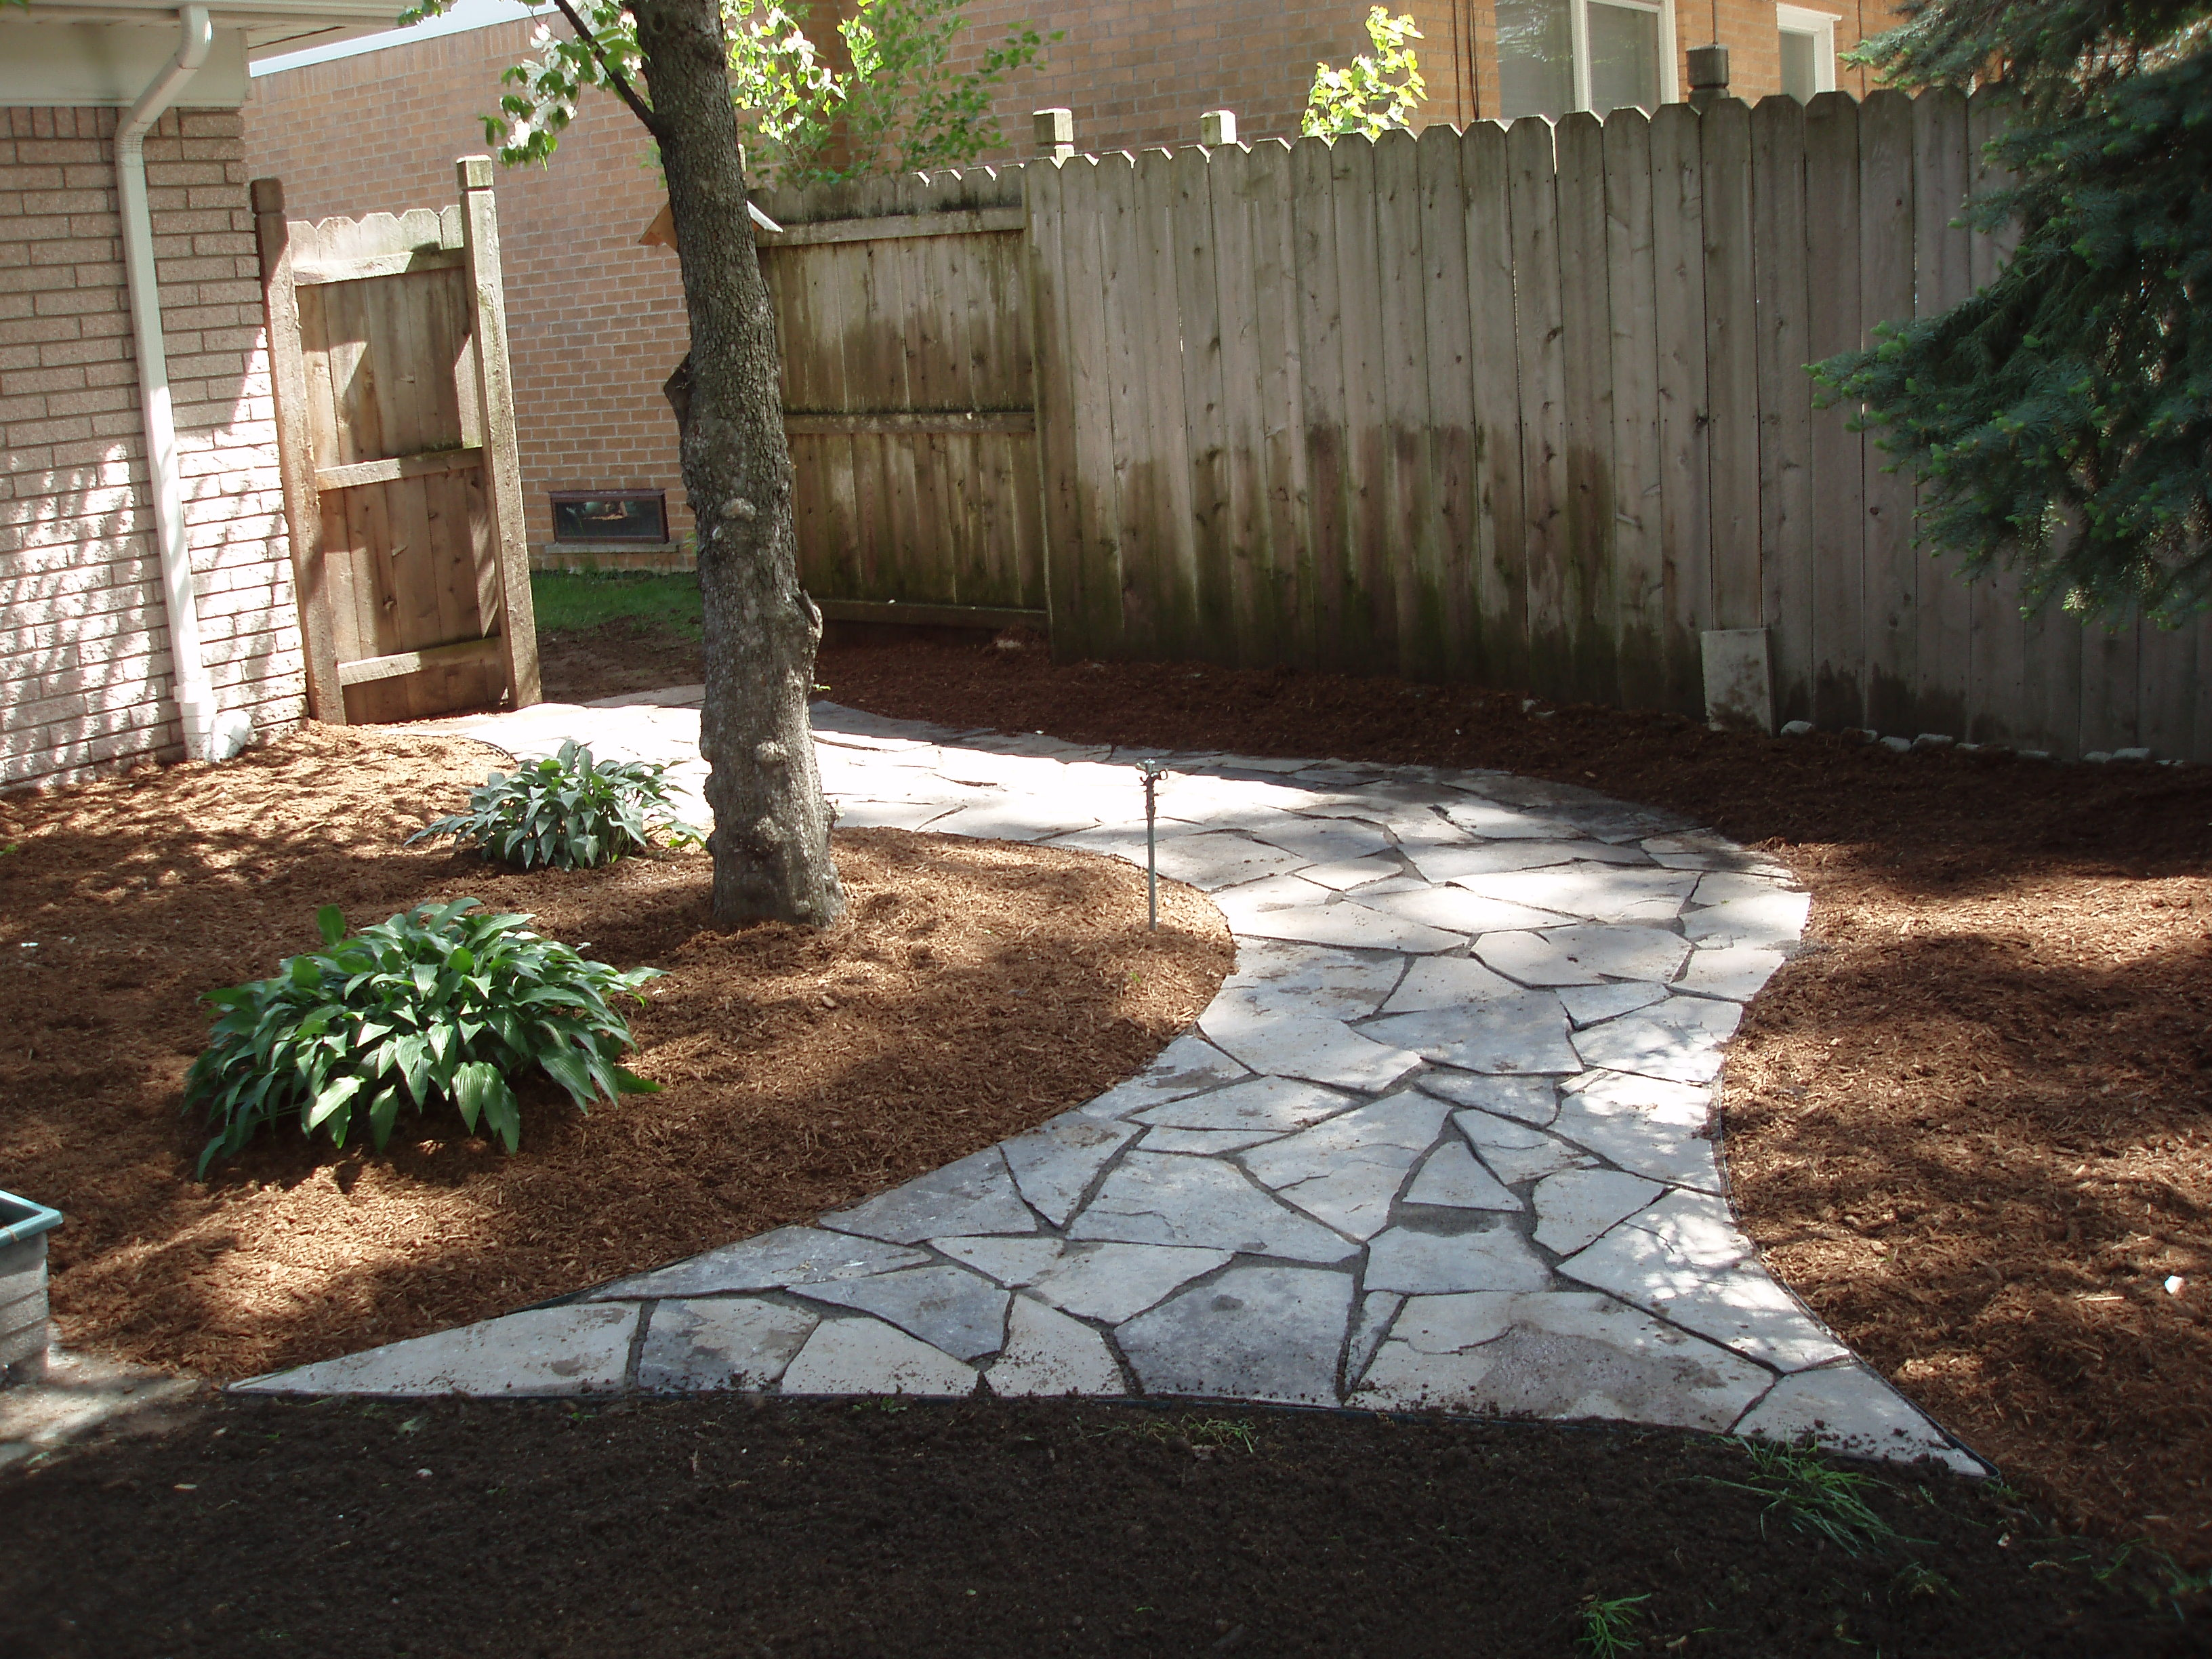 Mulch Backyard Ideas : Mulch & Compost for Brick Paver Walkways and other Landscaping Ideas